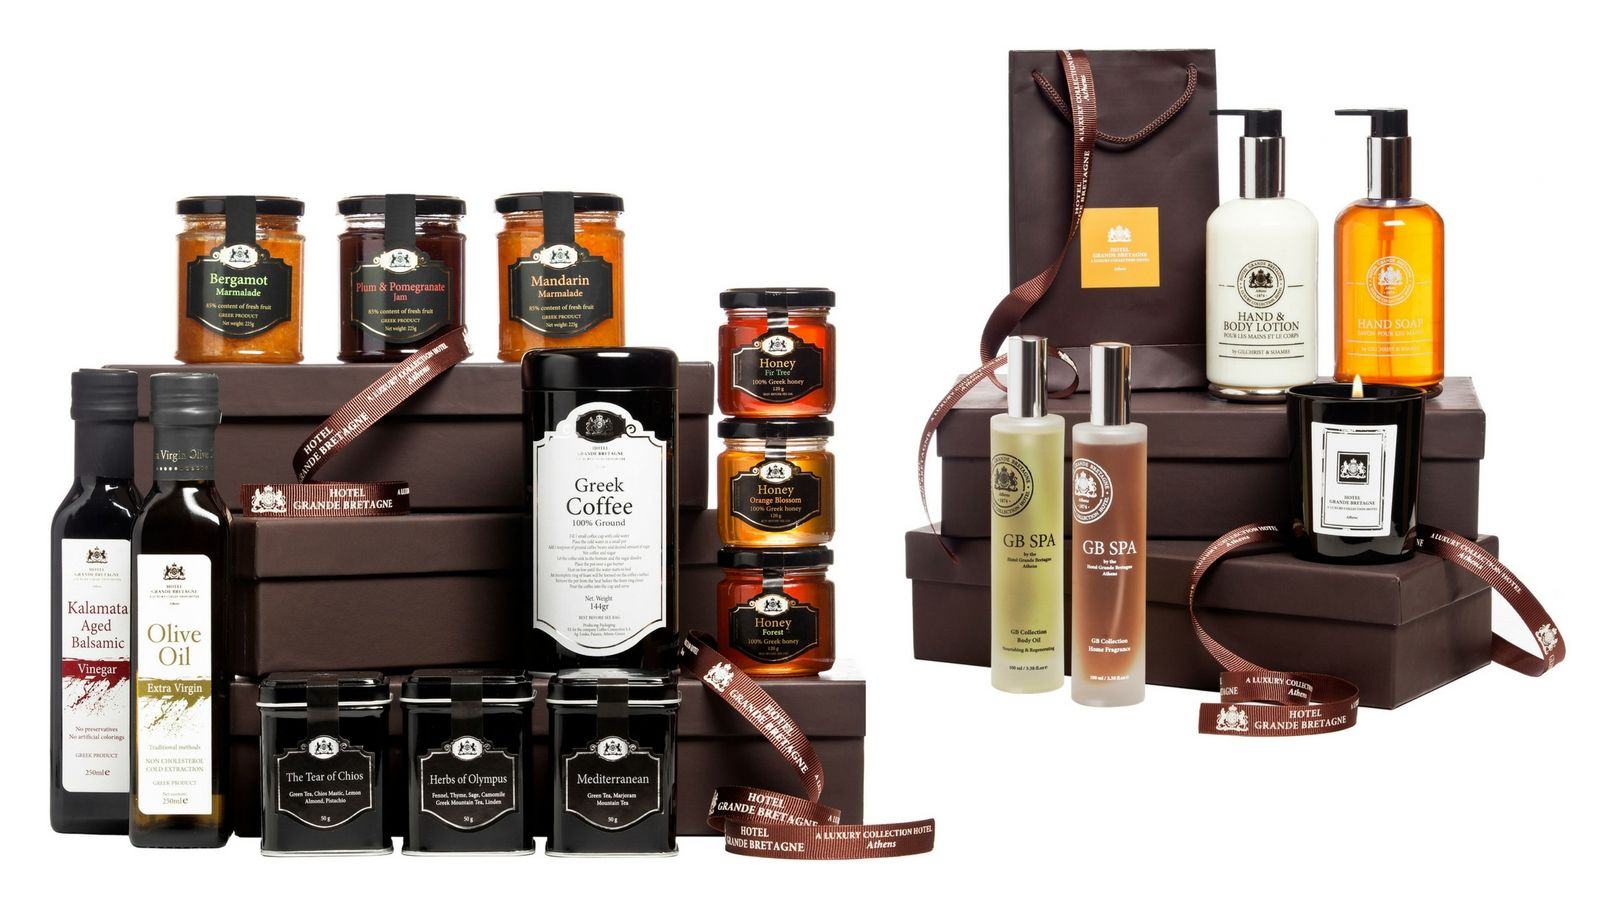 Food and Spa products for online purchase from the E-store of Hotel Grande Bretagne in Athens